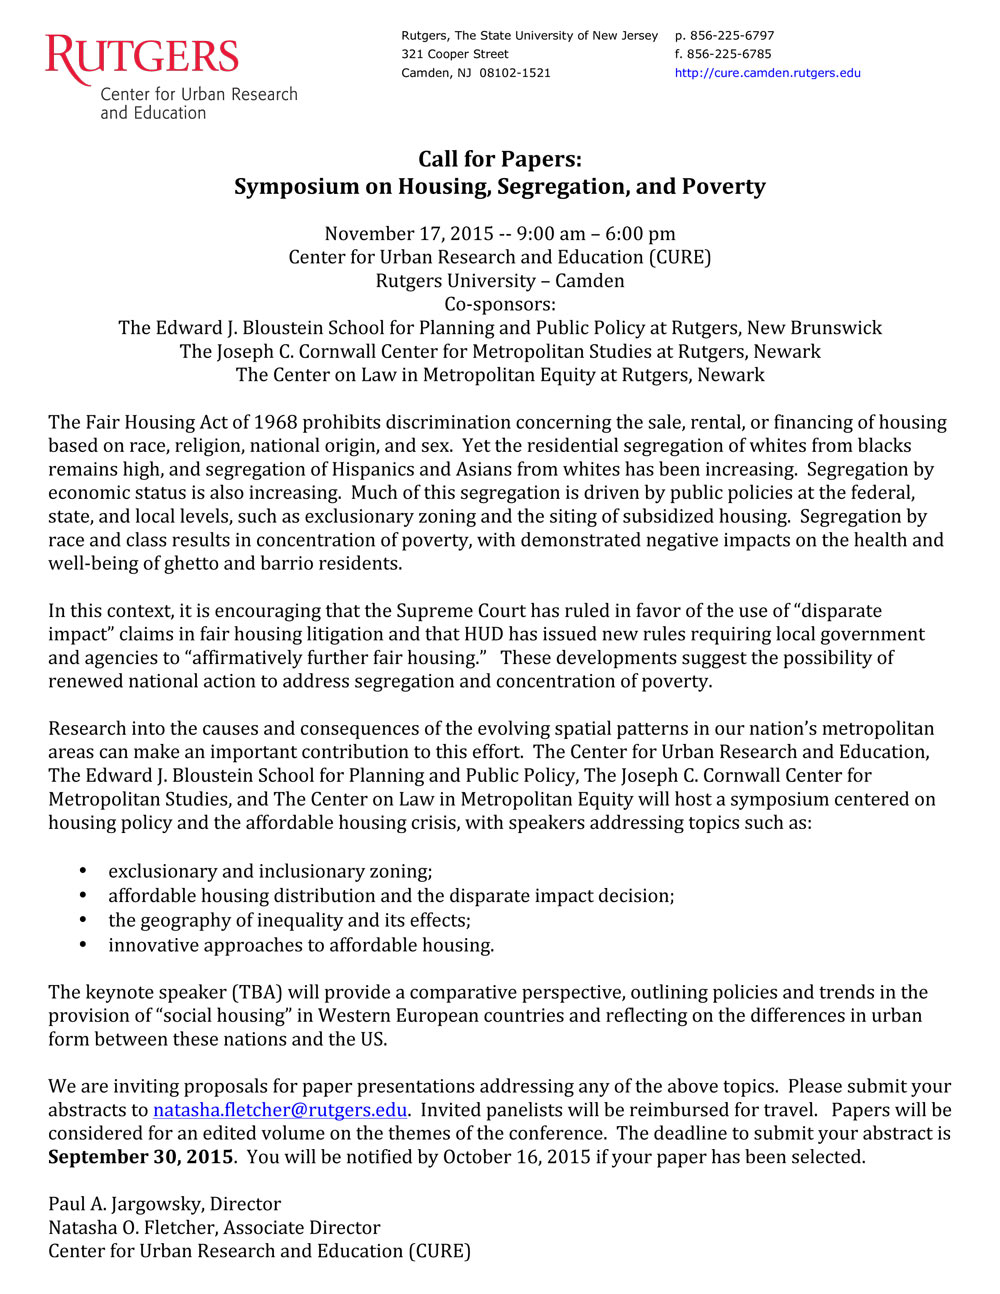 CFP Housing Symposium Call for papers - Click to read PDF